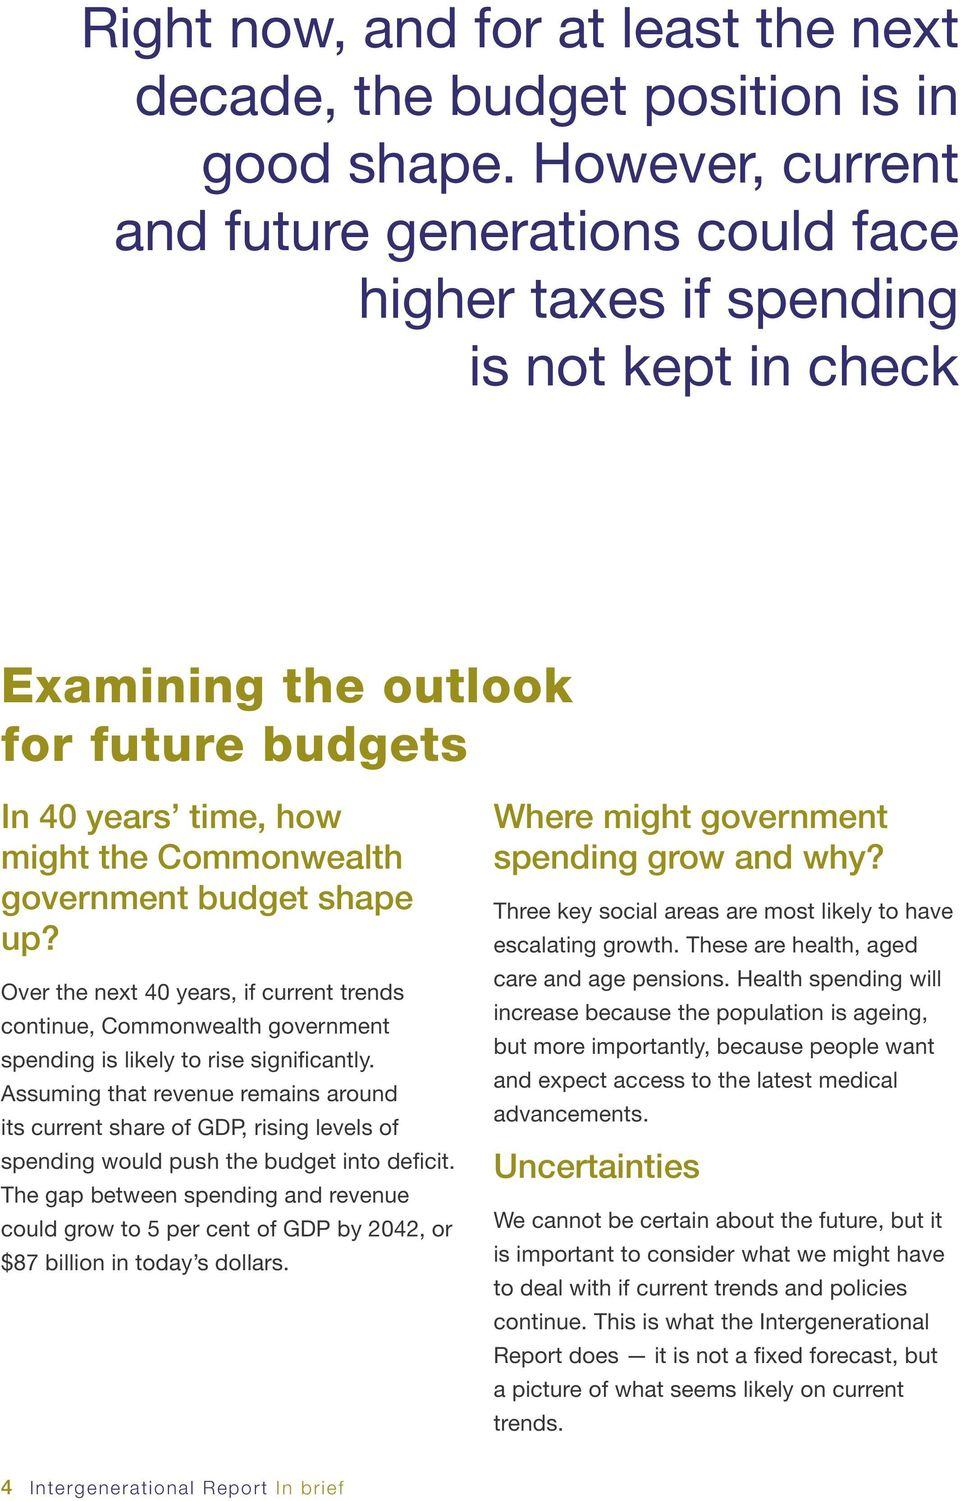 budget shape up? Over the next 40 years, if current trends continue, Commonwealth government spending is likely to rise significantly.